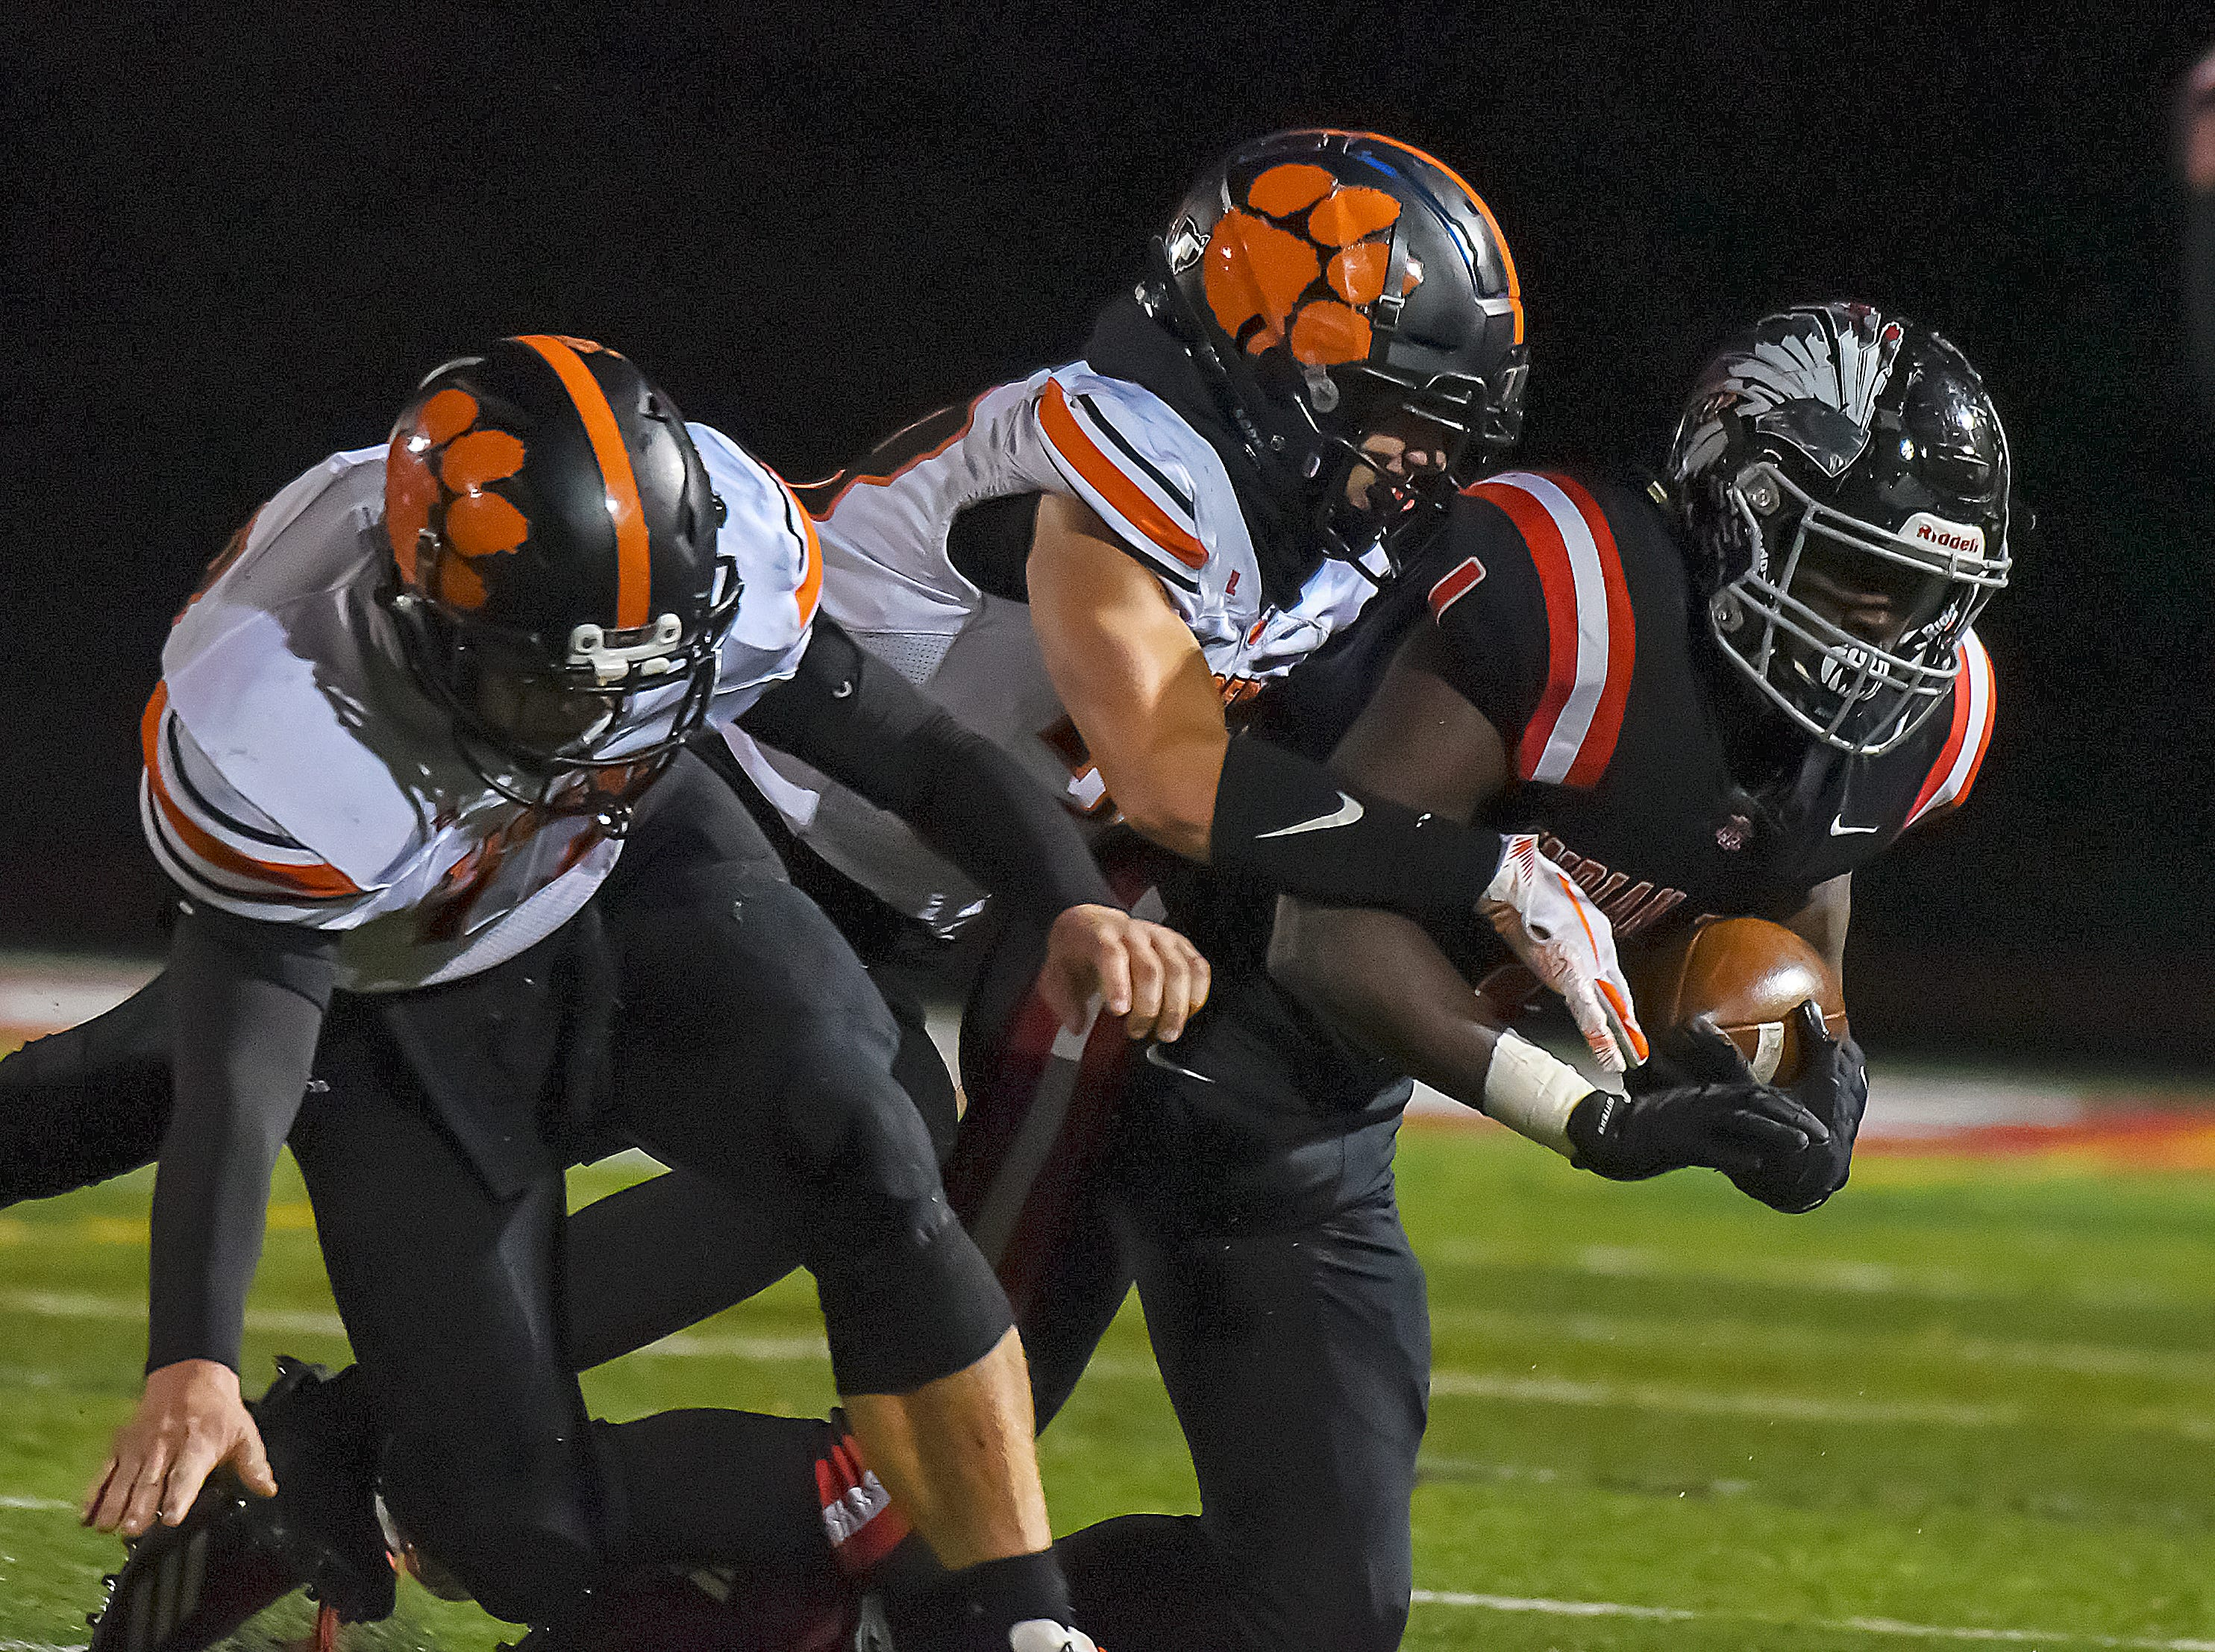 Dimetrious Baylor (1) of Indian Hill is tackled by Waverly defenders in the OHSAA D4 Region 16 Playoffs at Indian Hill High School, Saturday, Nov. 3, 2018